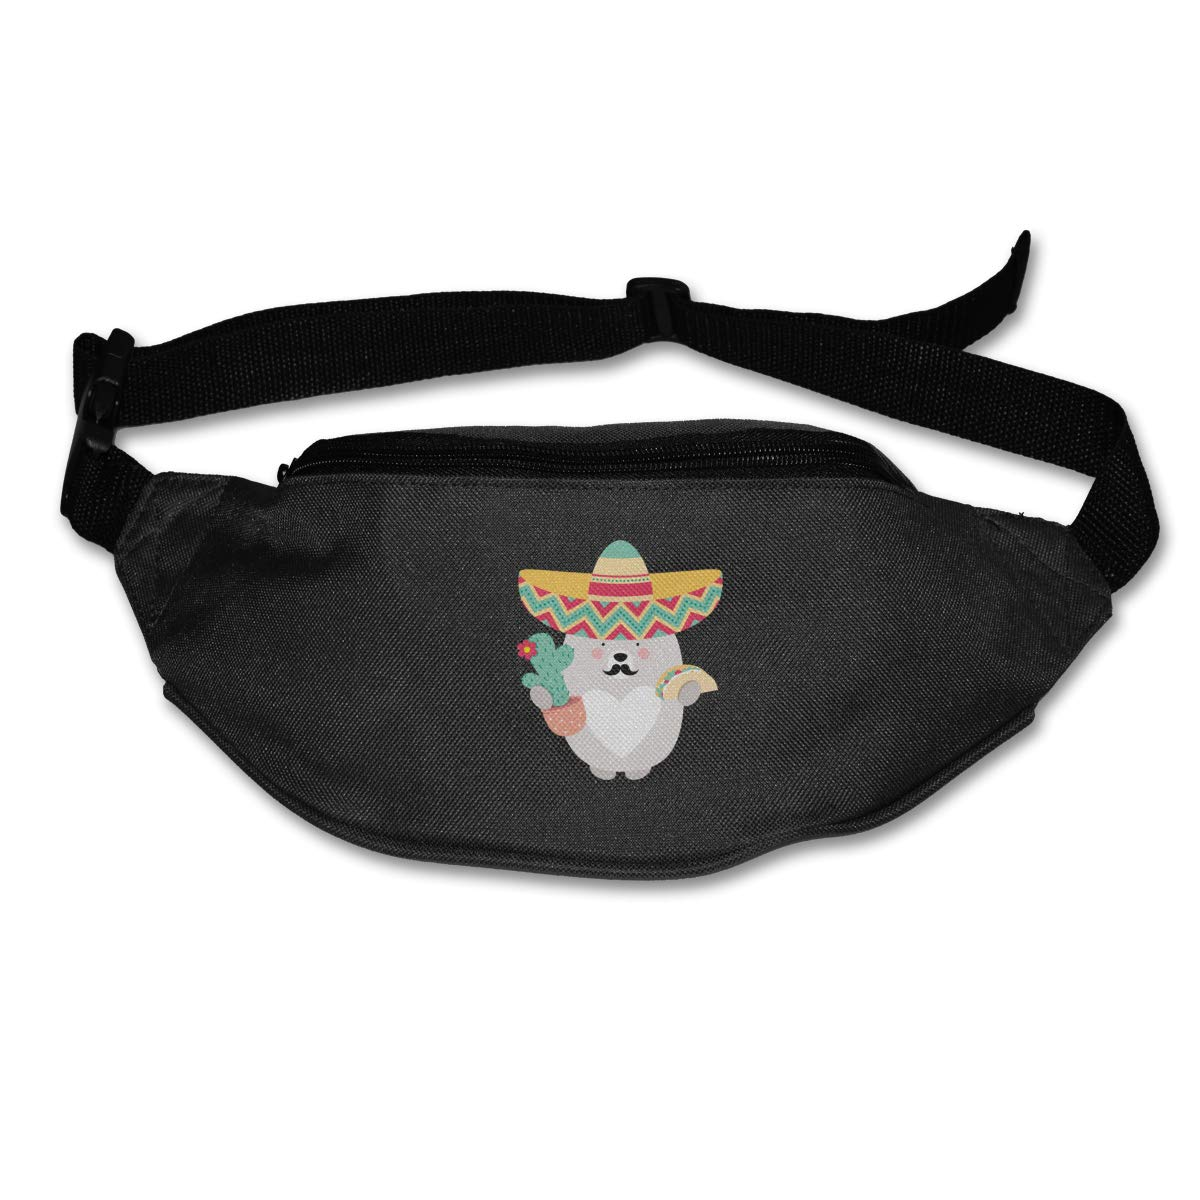 Fuuny Cactus Sport Waist Pack Fanny Pack Adjustable For Travel